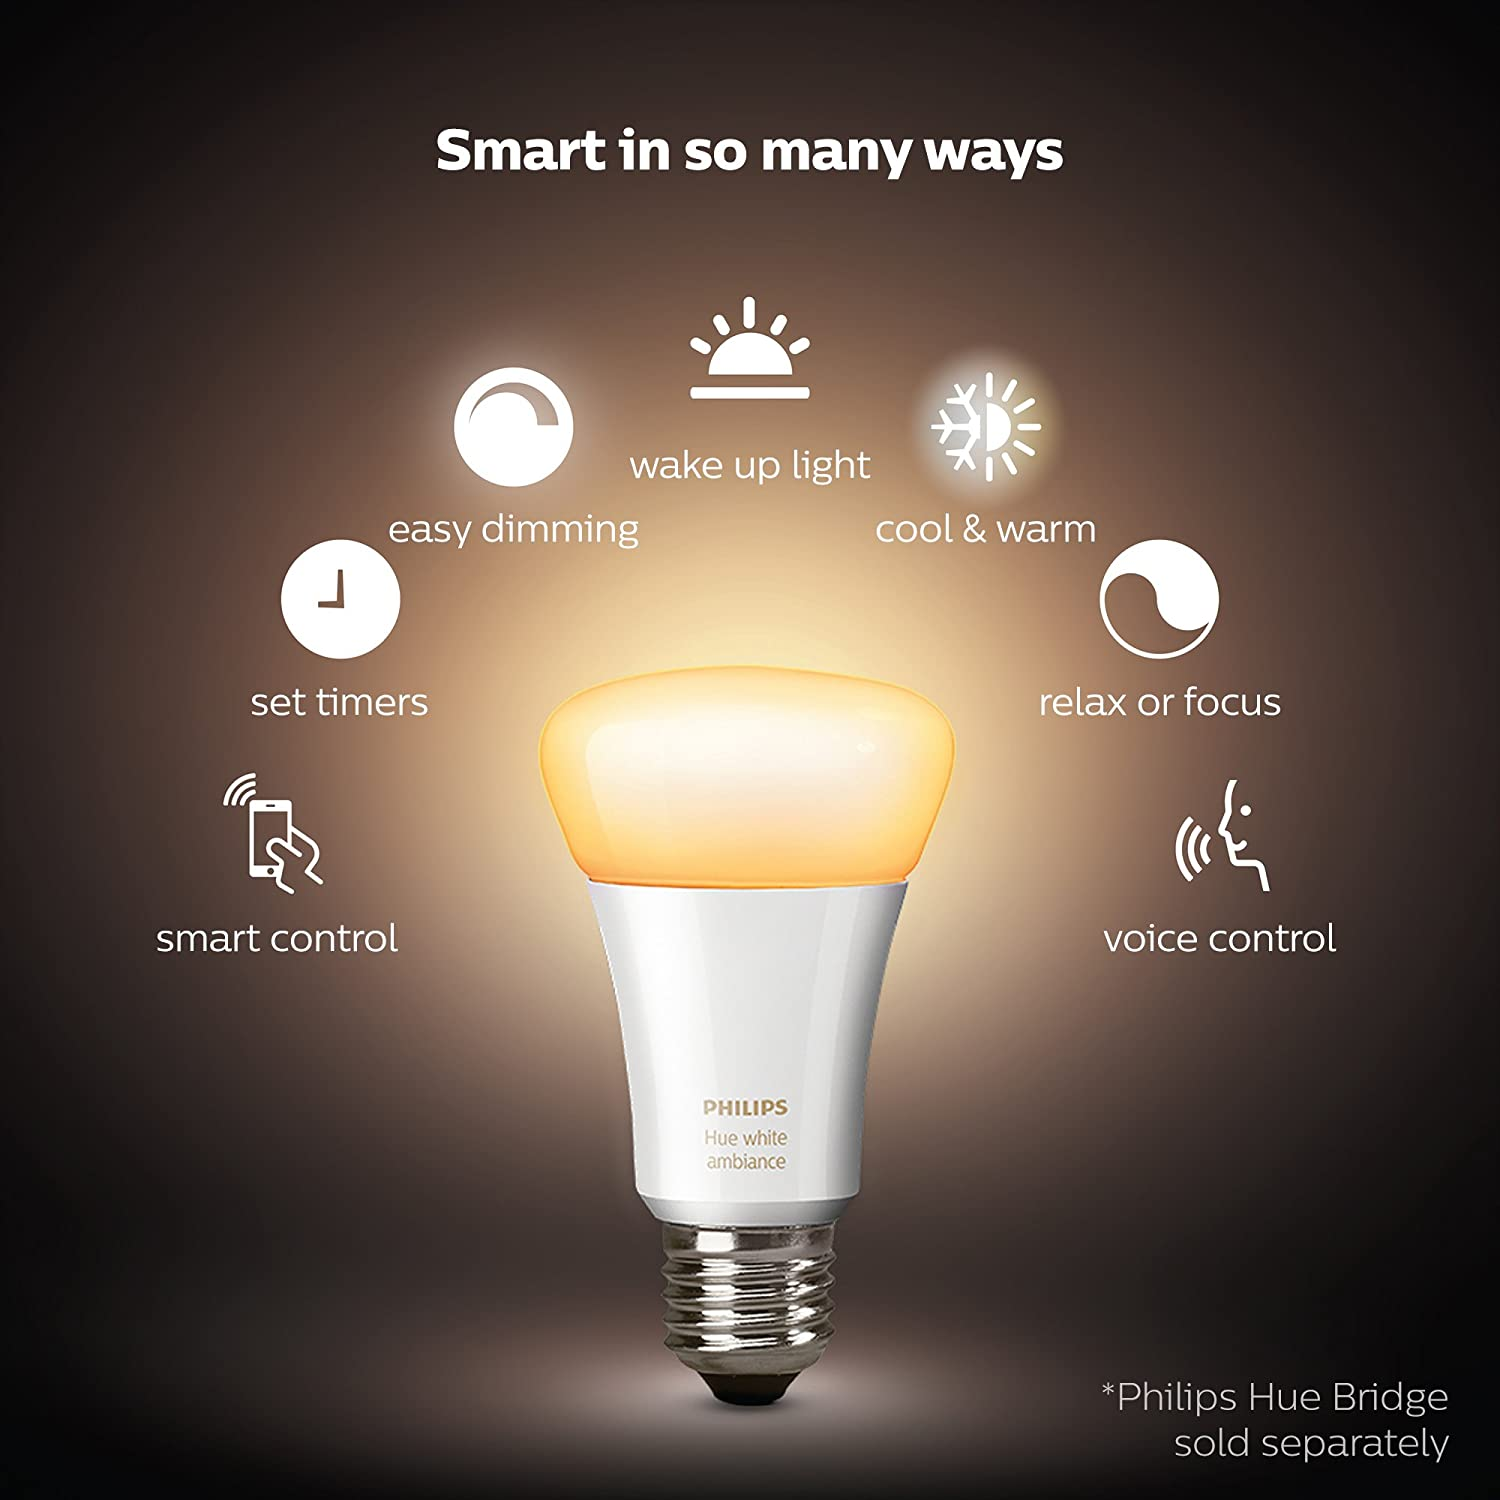 Philips Hue White Ambiance A19 2 Pack 60w Equivalent Dimmable Led Smart Bulbs Hue Hub Required Works With Alexa Apple Homekit More Old Version 2 Bulbs 453092 Amazon Com